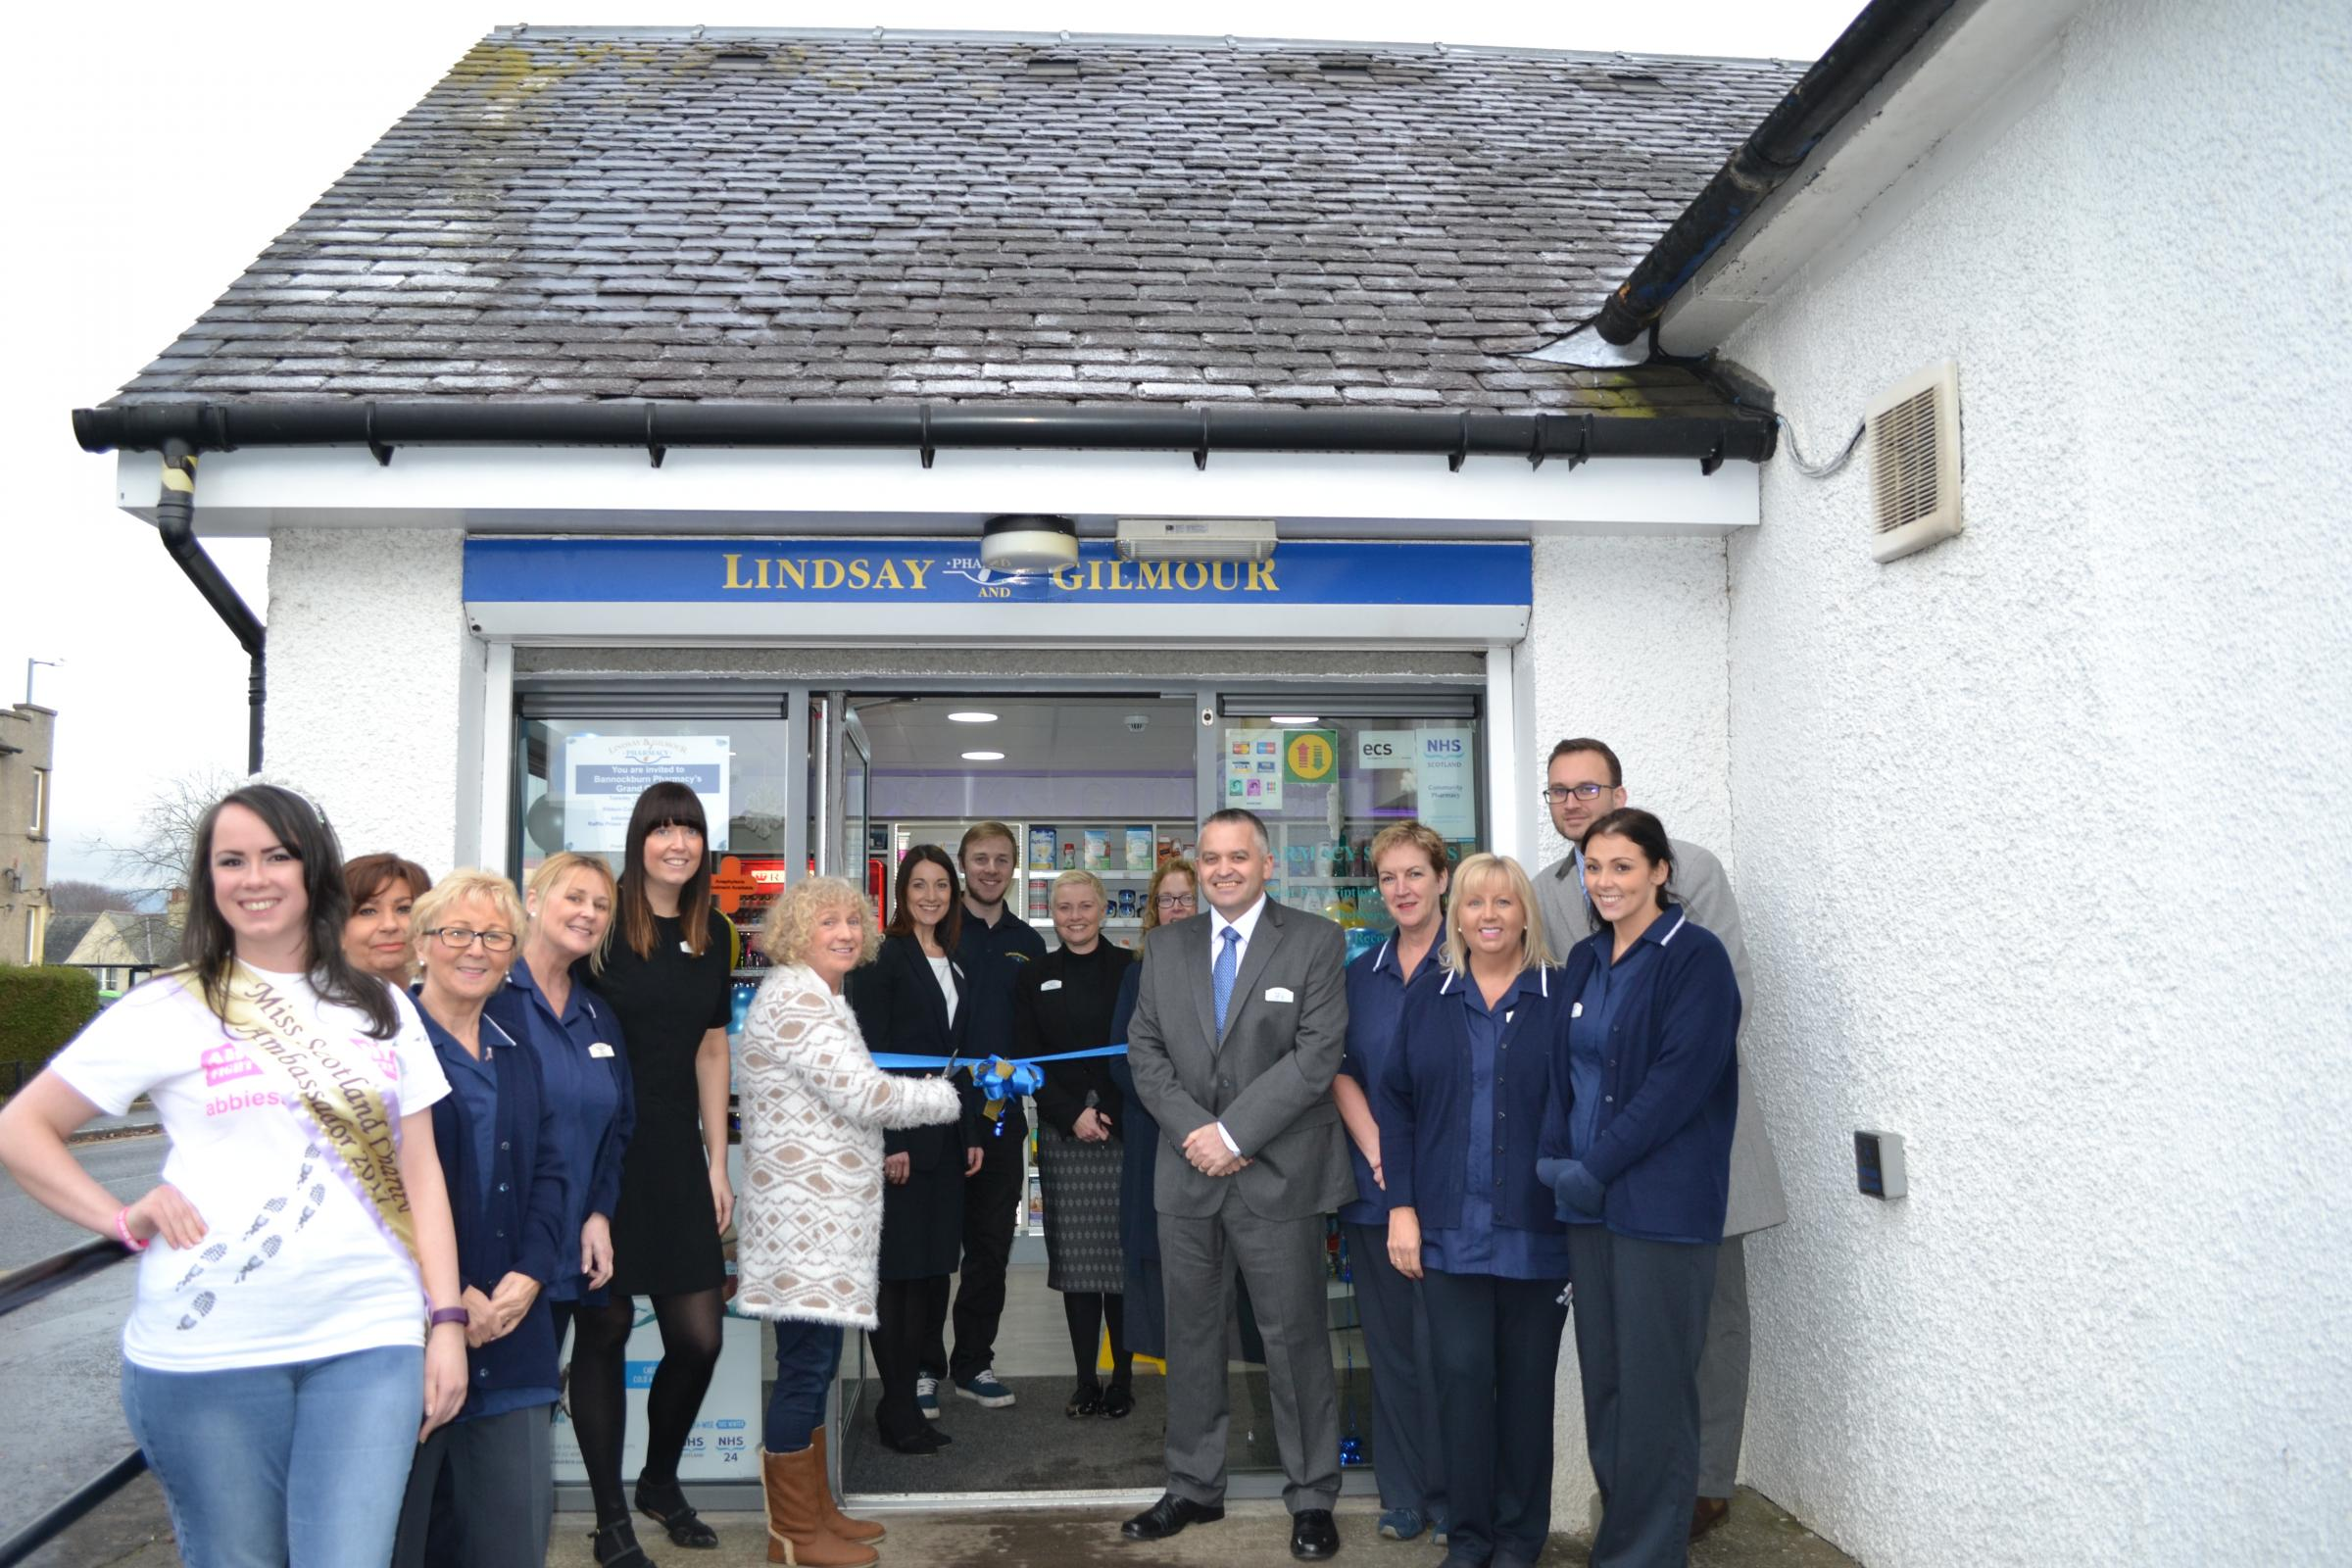 Lindsay & Gilmour managing director Philip Galt alongside pharmacist manager Gillian Frame and colleagues at the re-opening